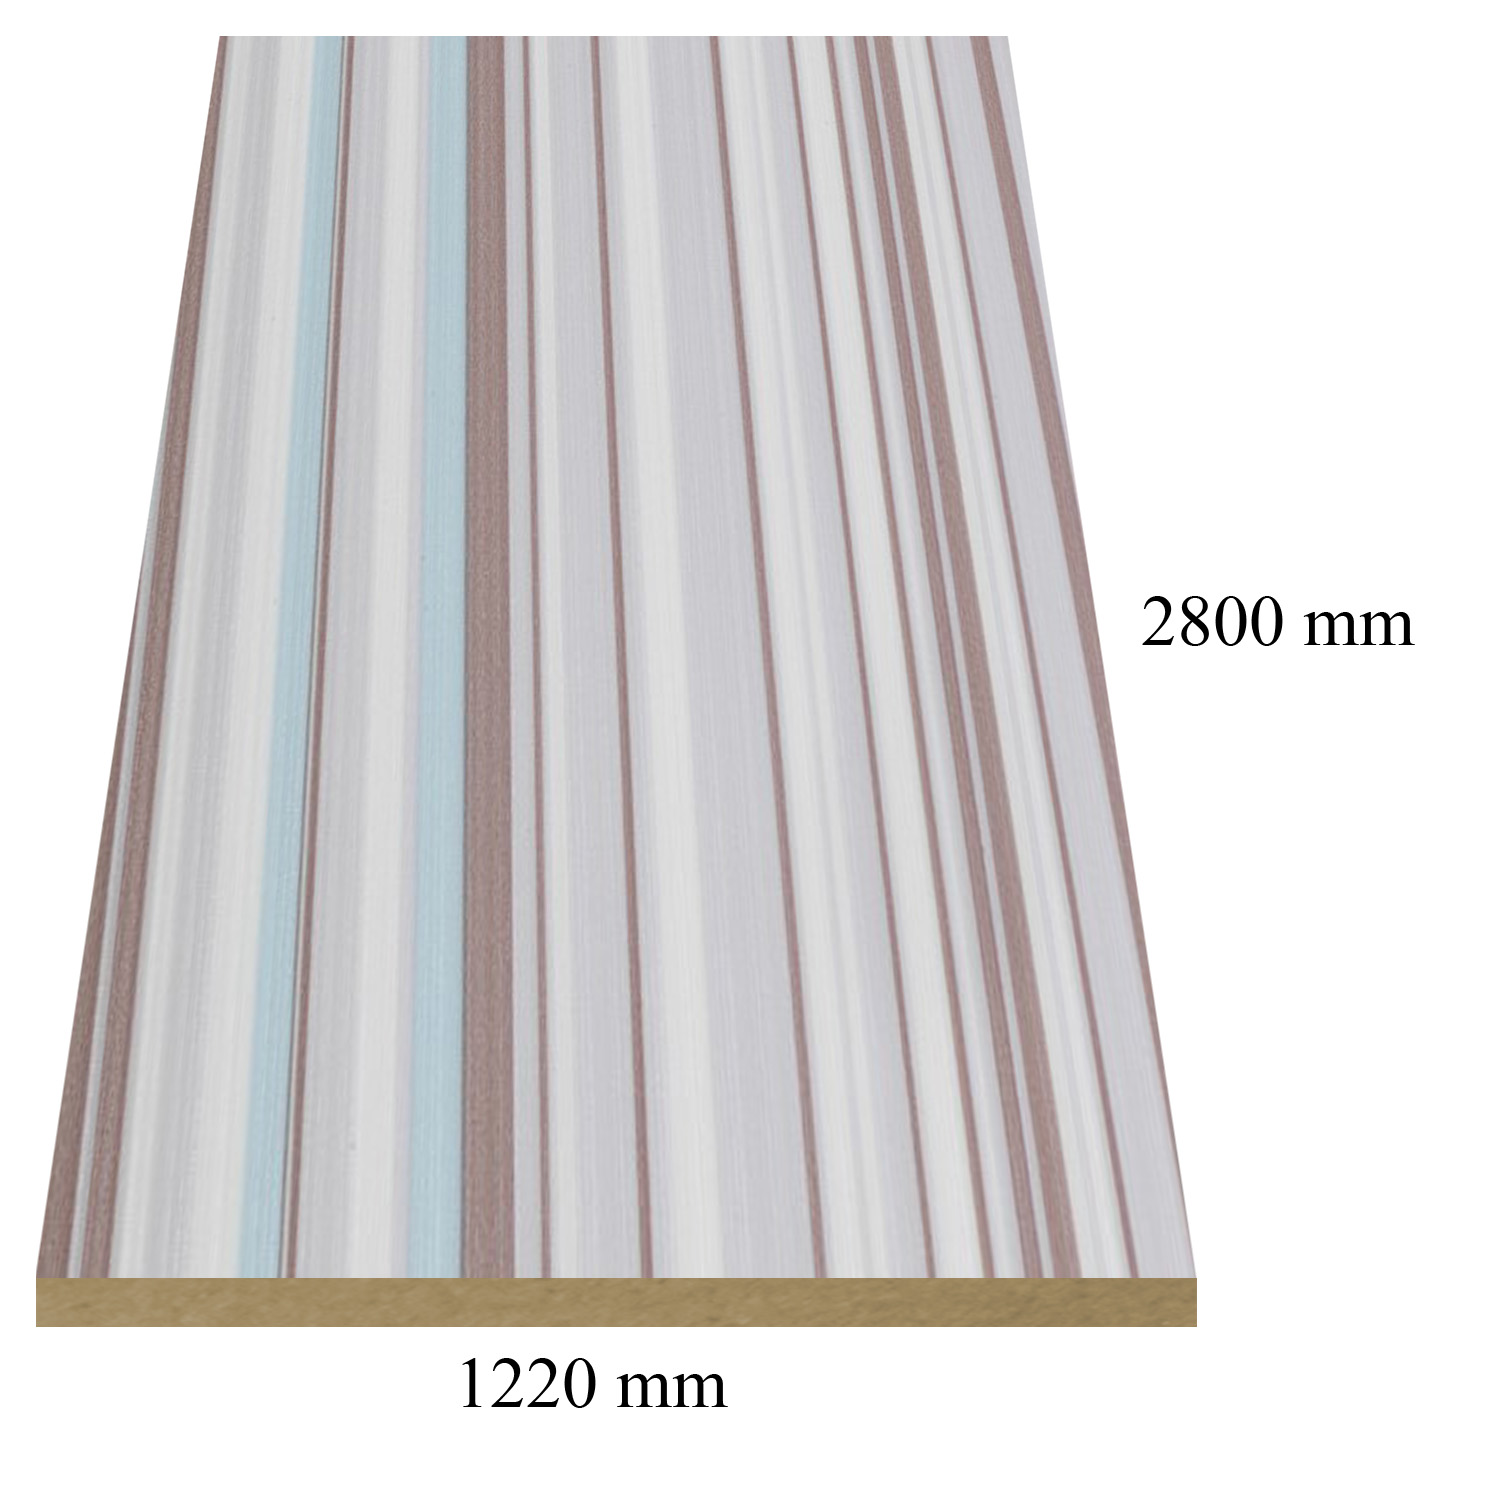 716 Kaleidos high gloss - PVC coated 18 mm MDF